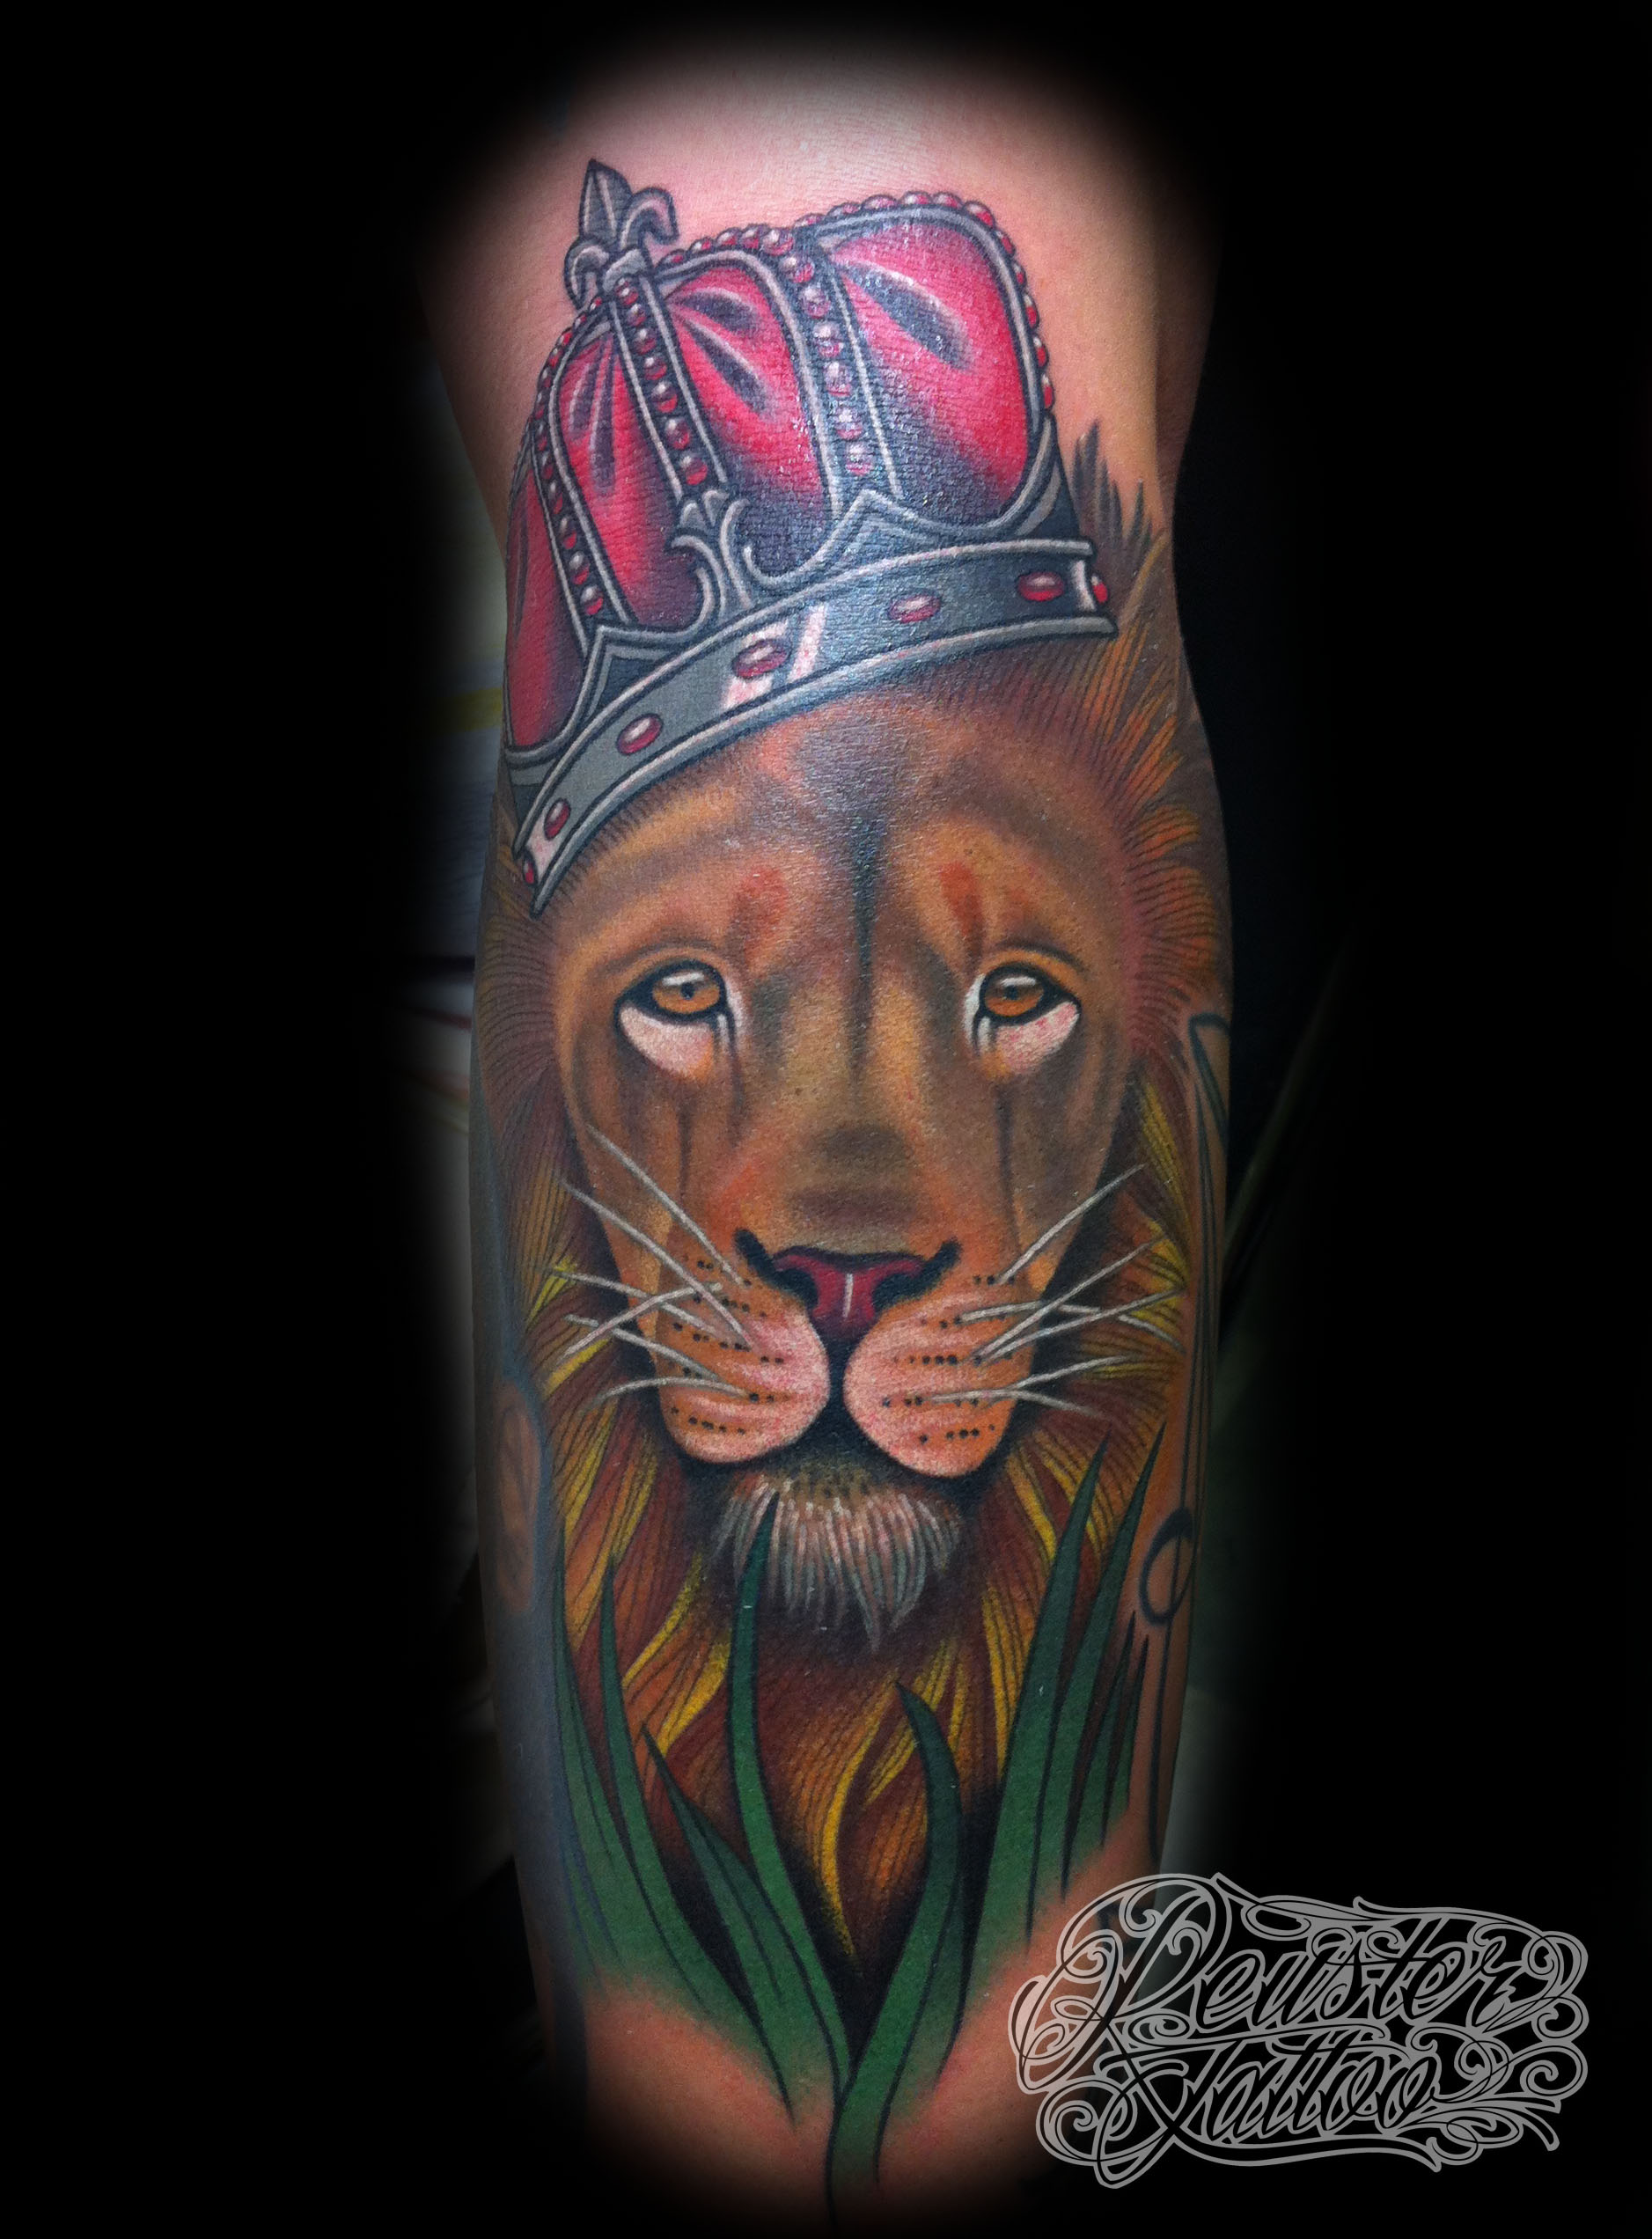 Lion king of the jungle tattoo - photo#9